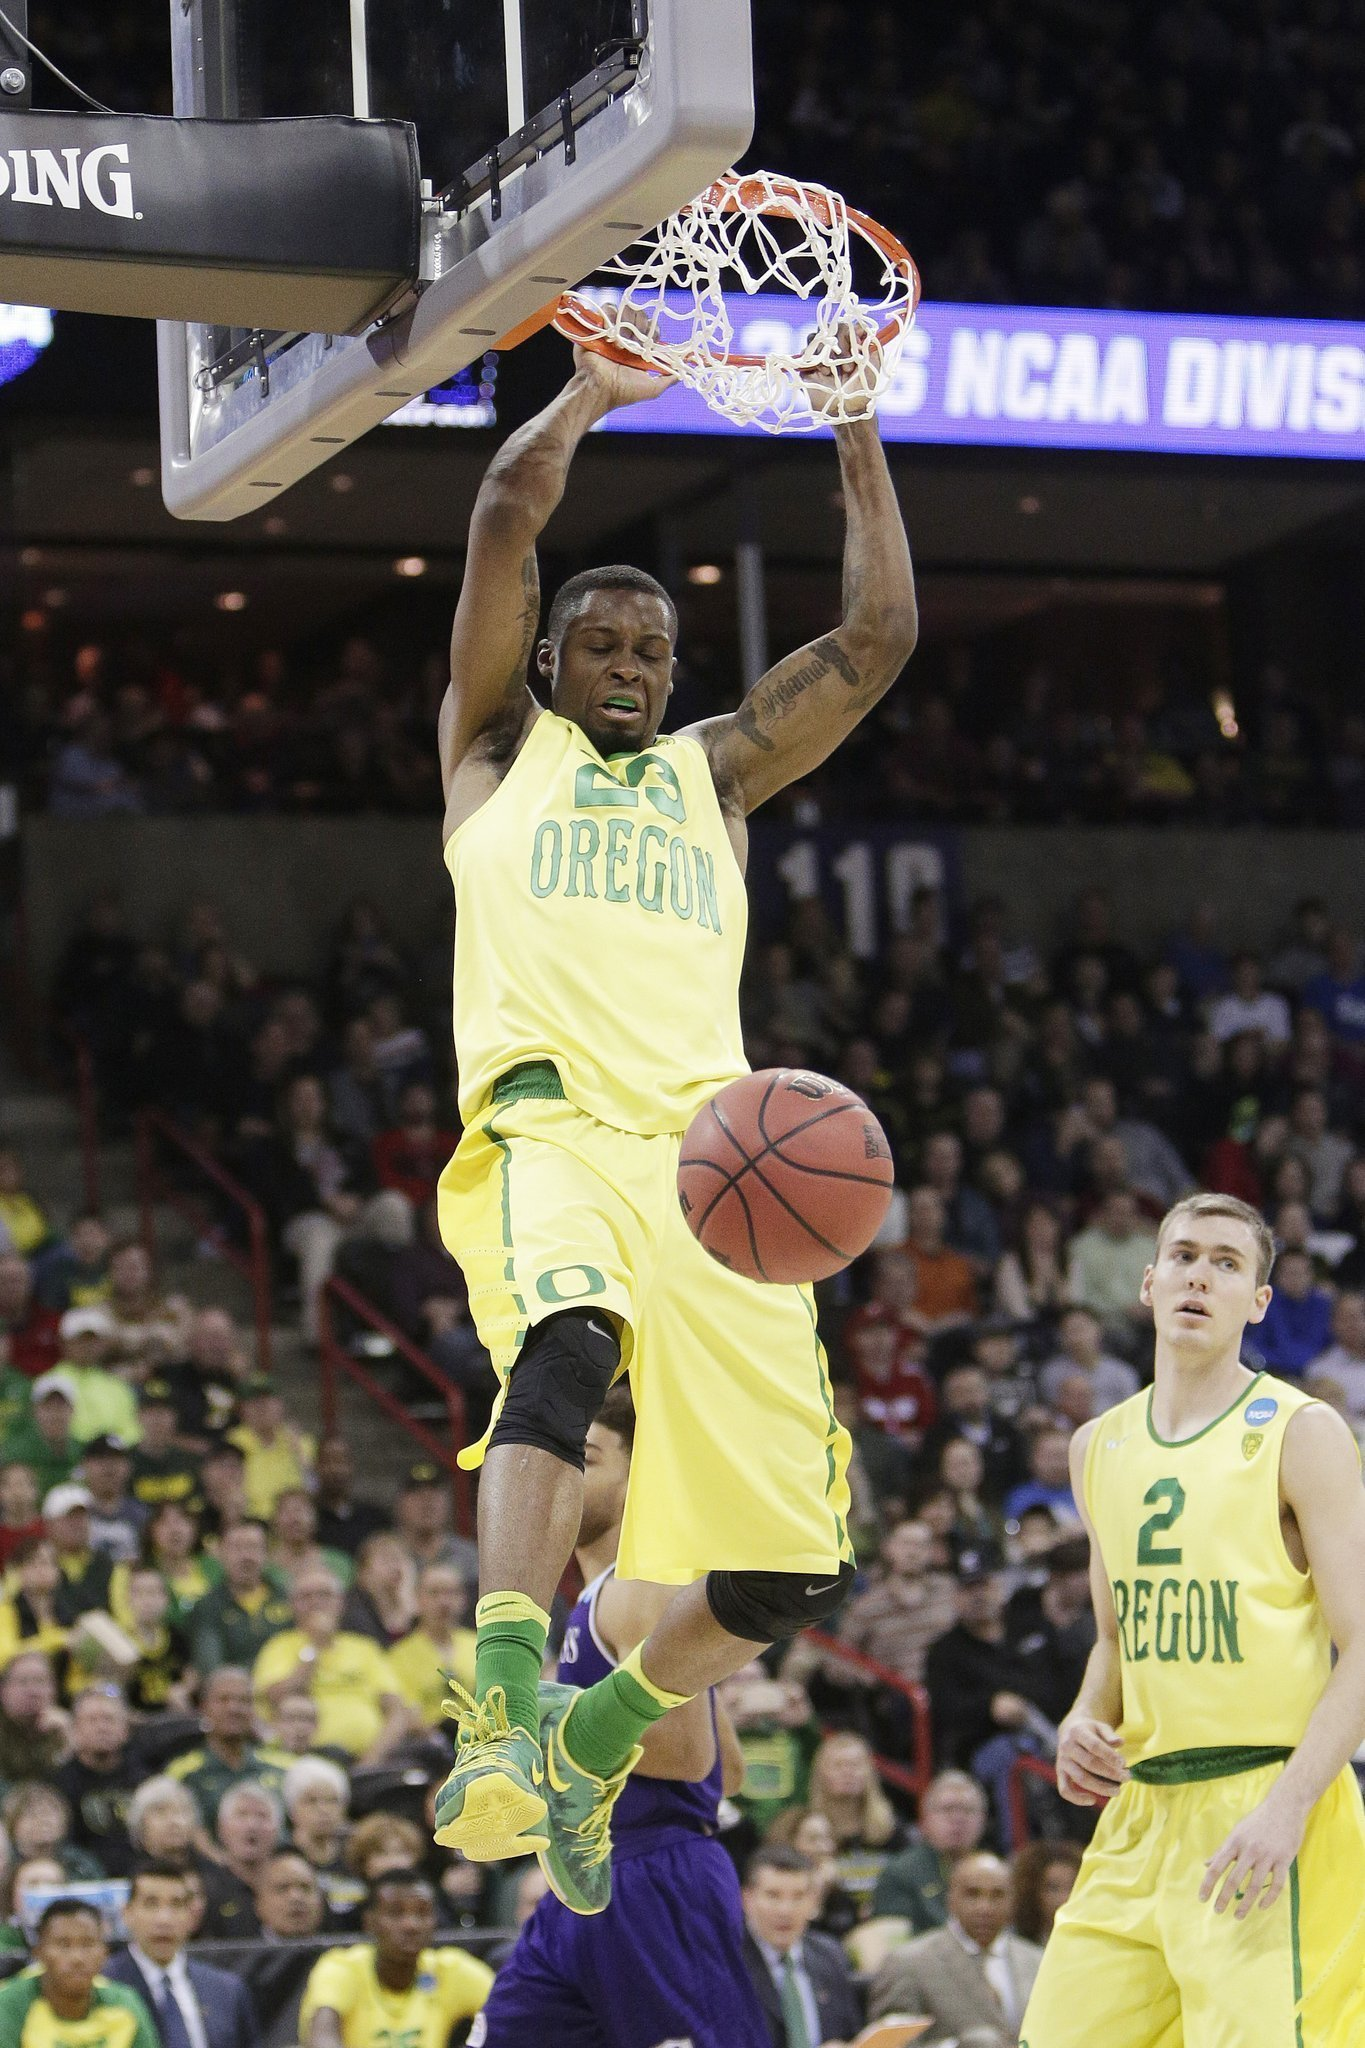 No. 1 seed Oregon romps past Holy Cross 91-52 - The San ...